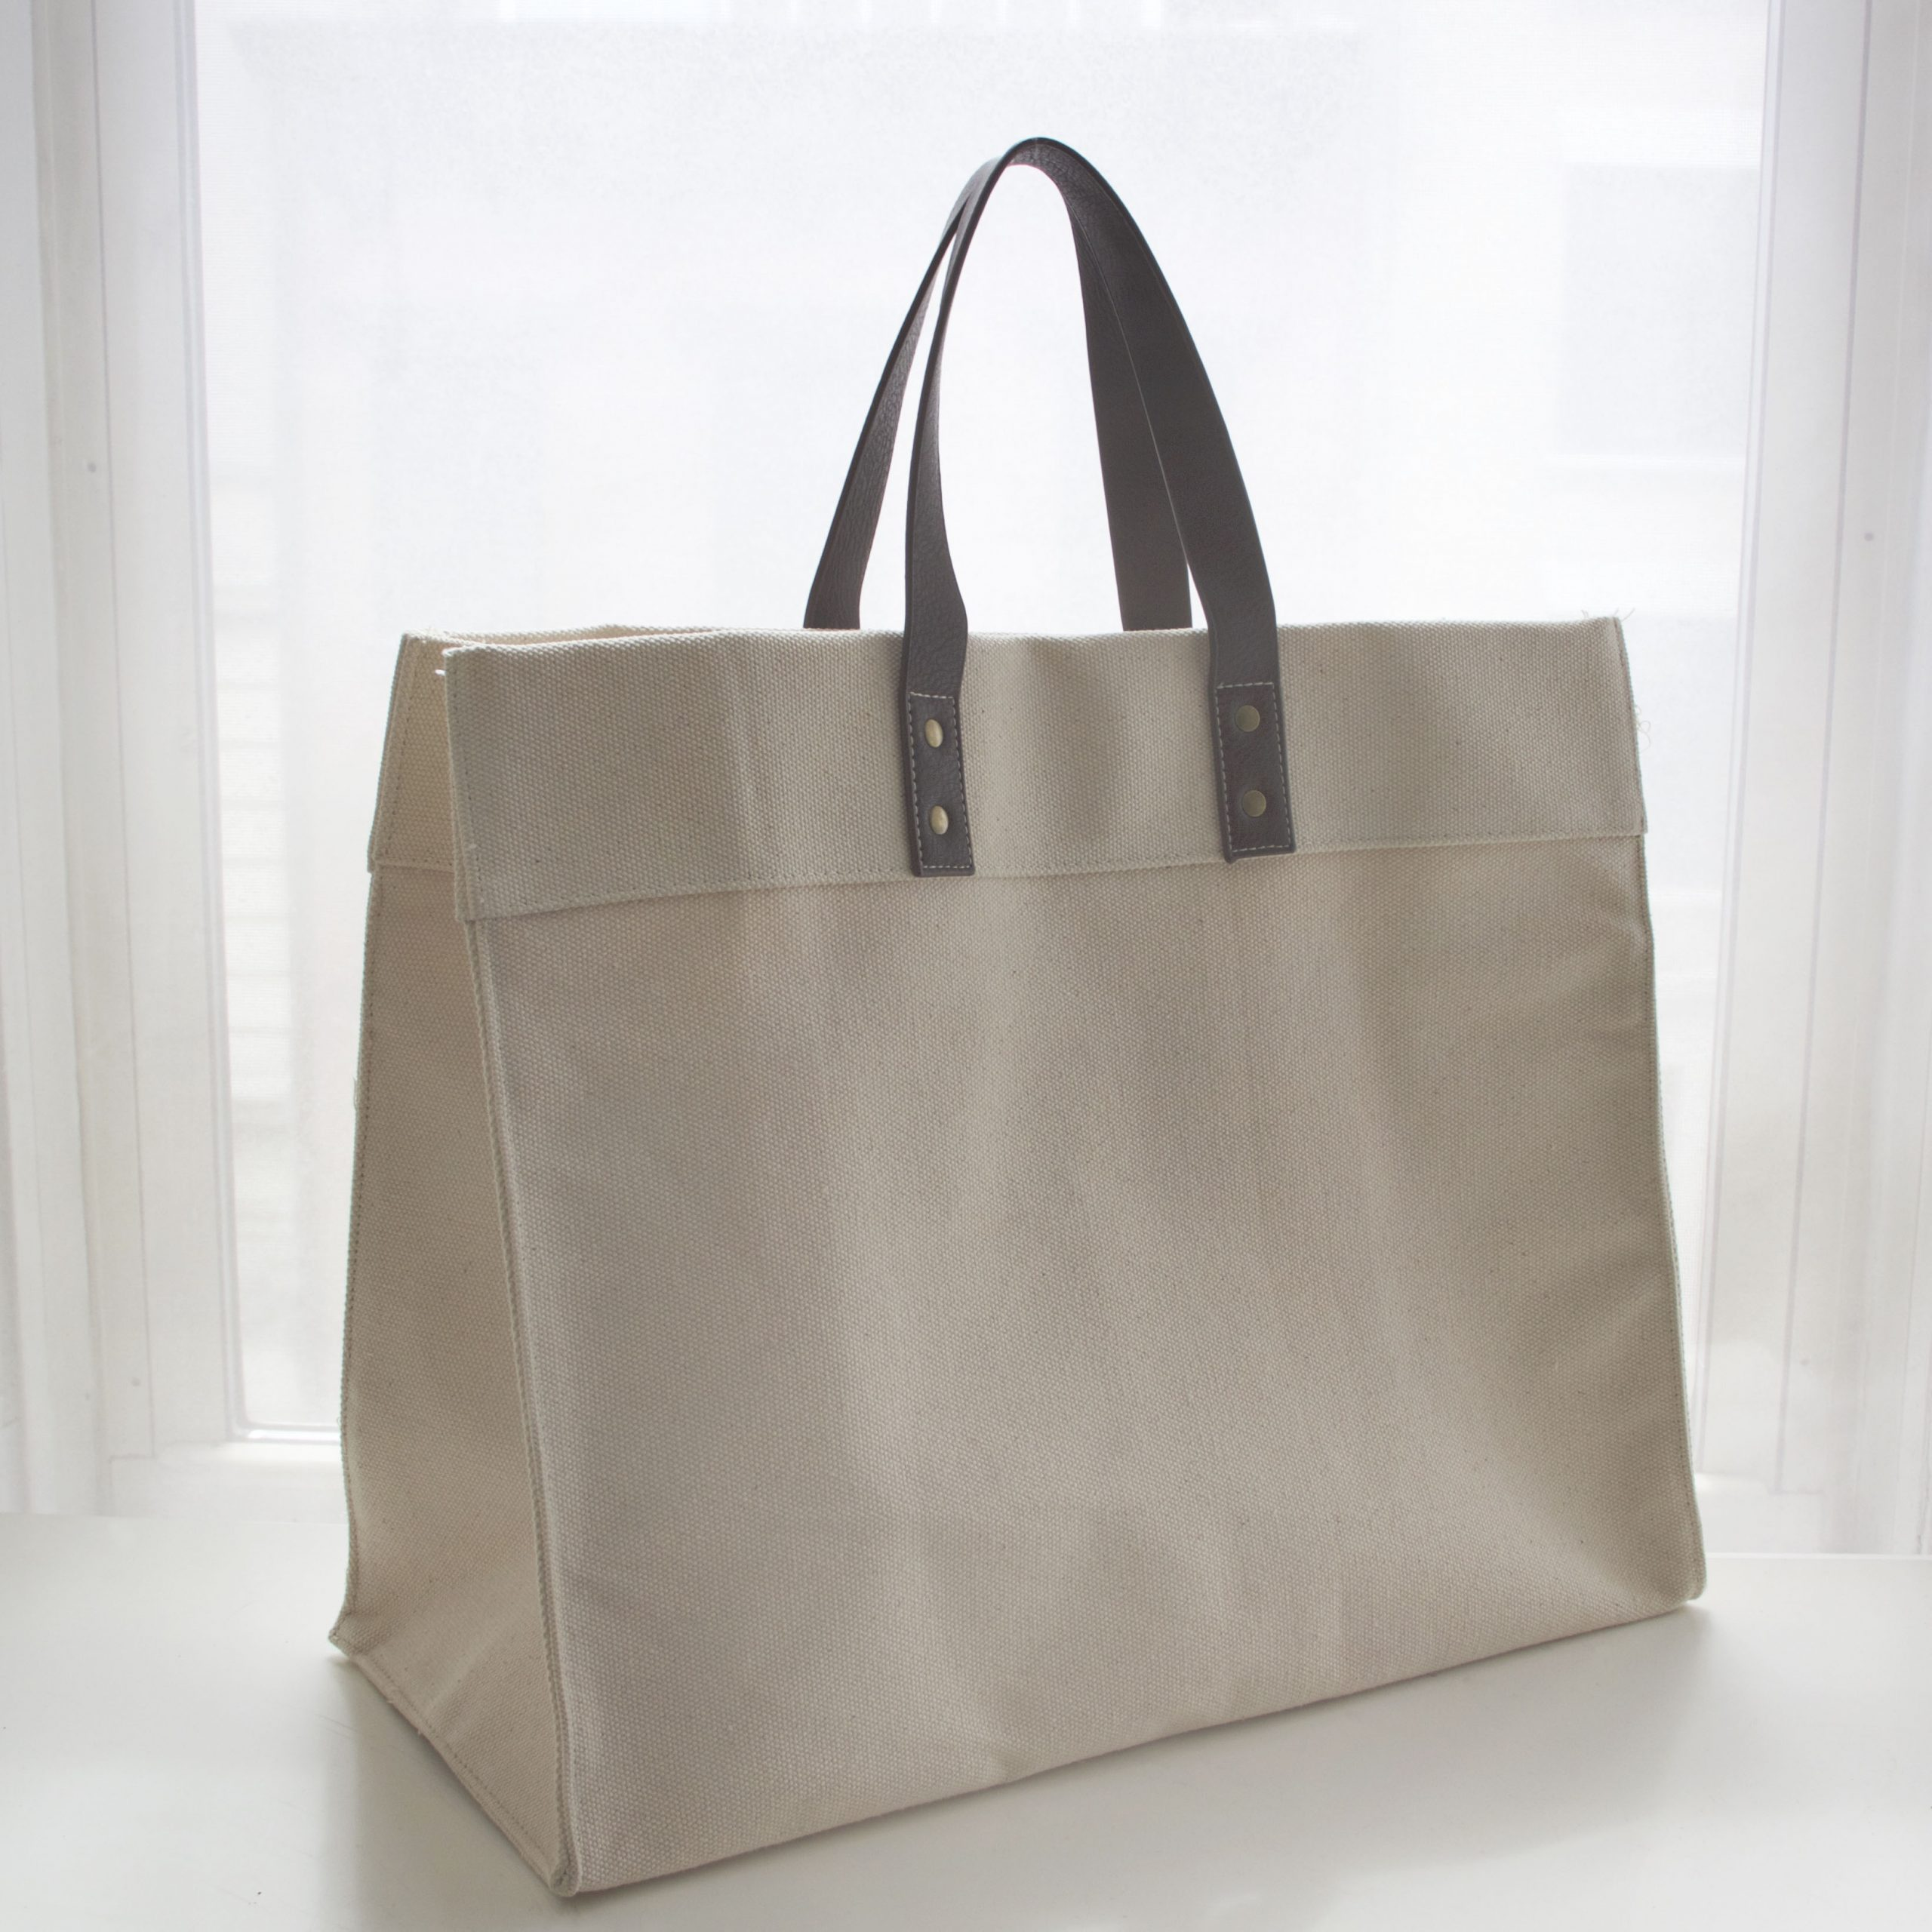 Heavy Canvas Logo Tote - with Vegan Leather Handles